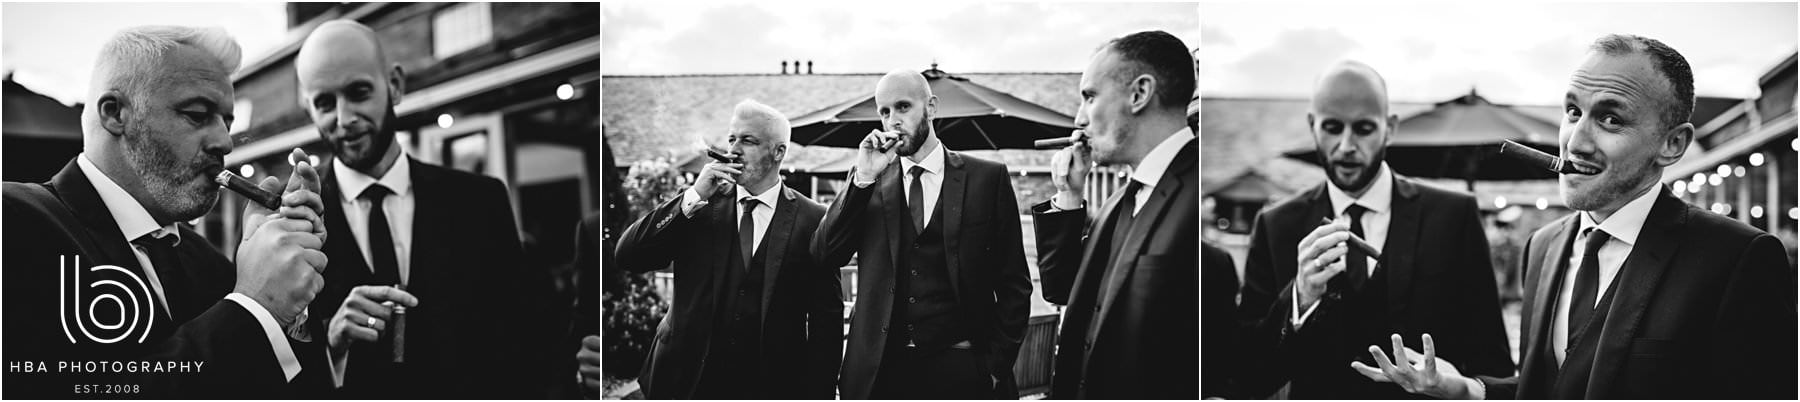 the groom and his men with cigars